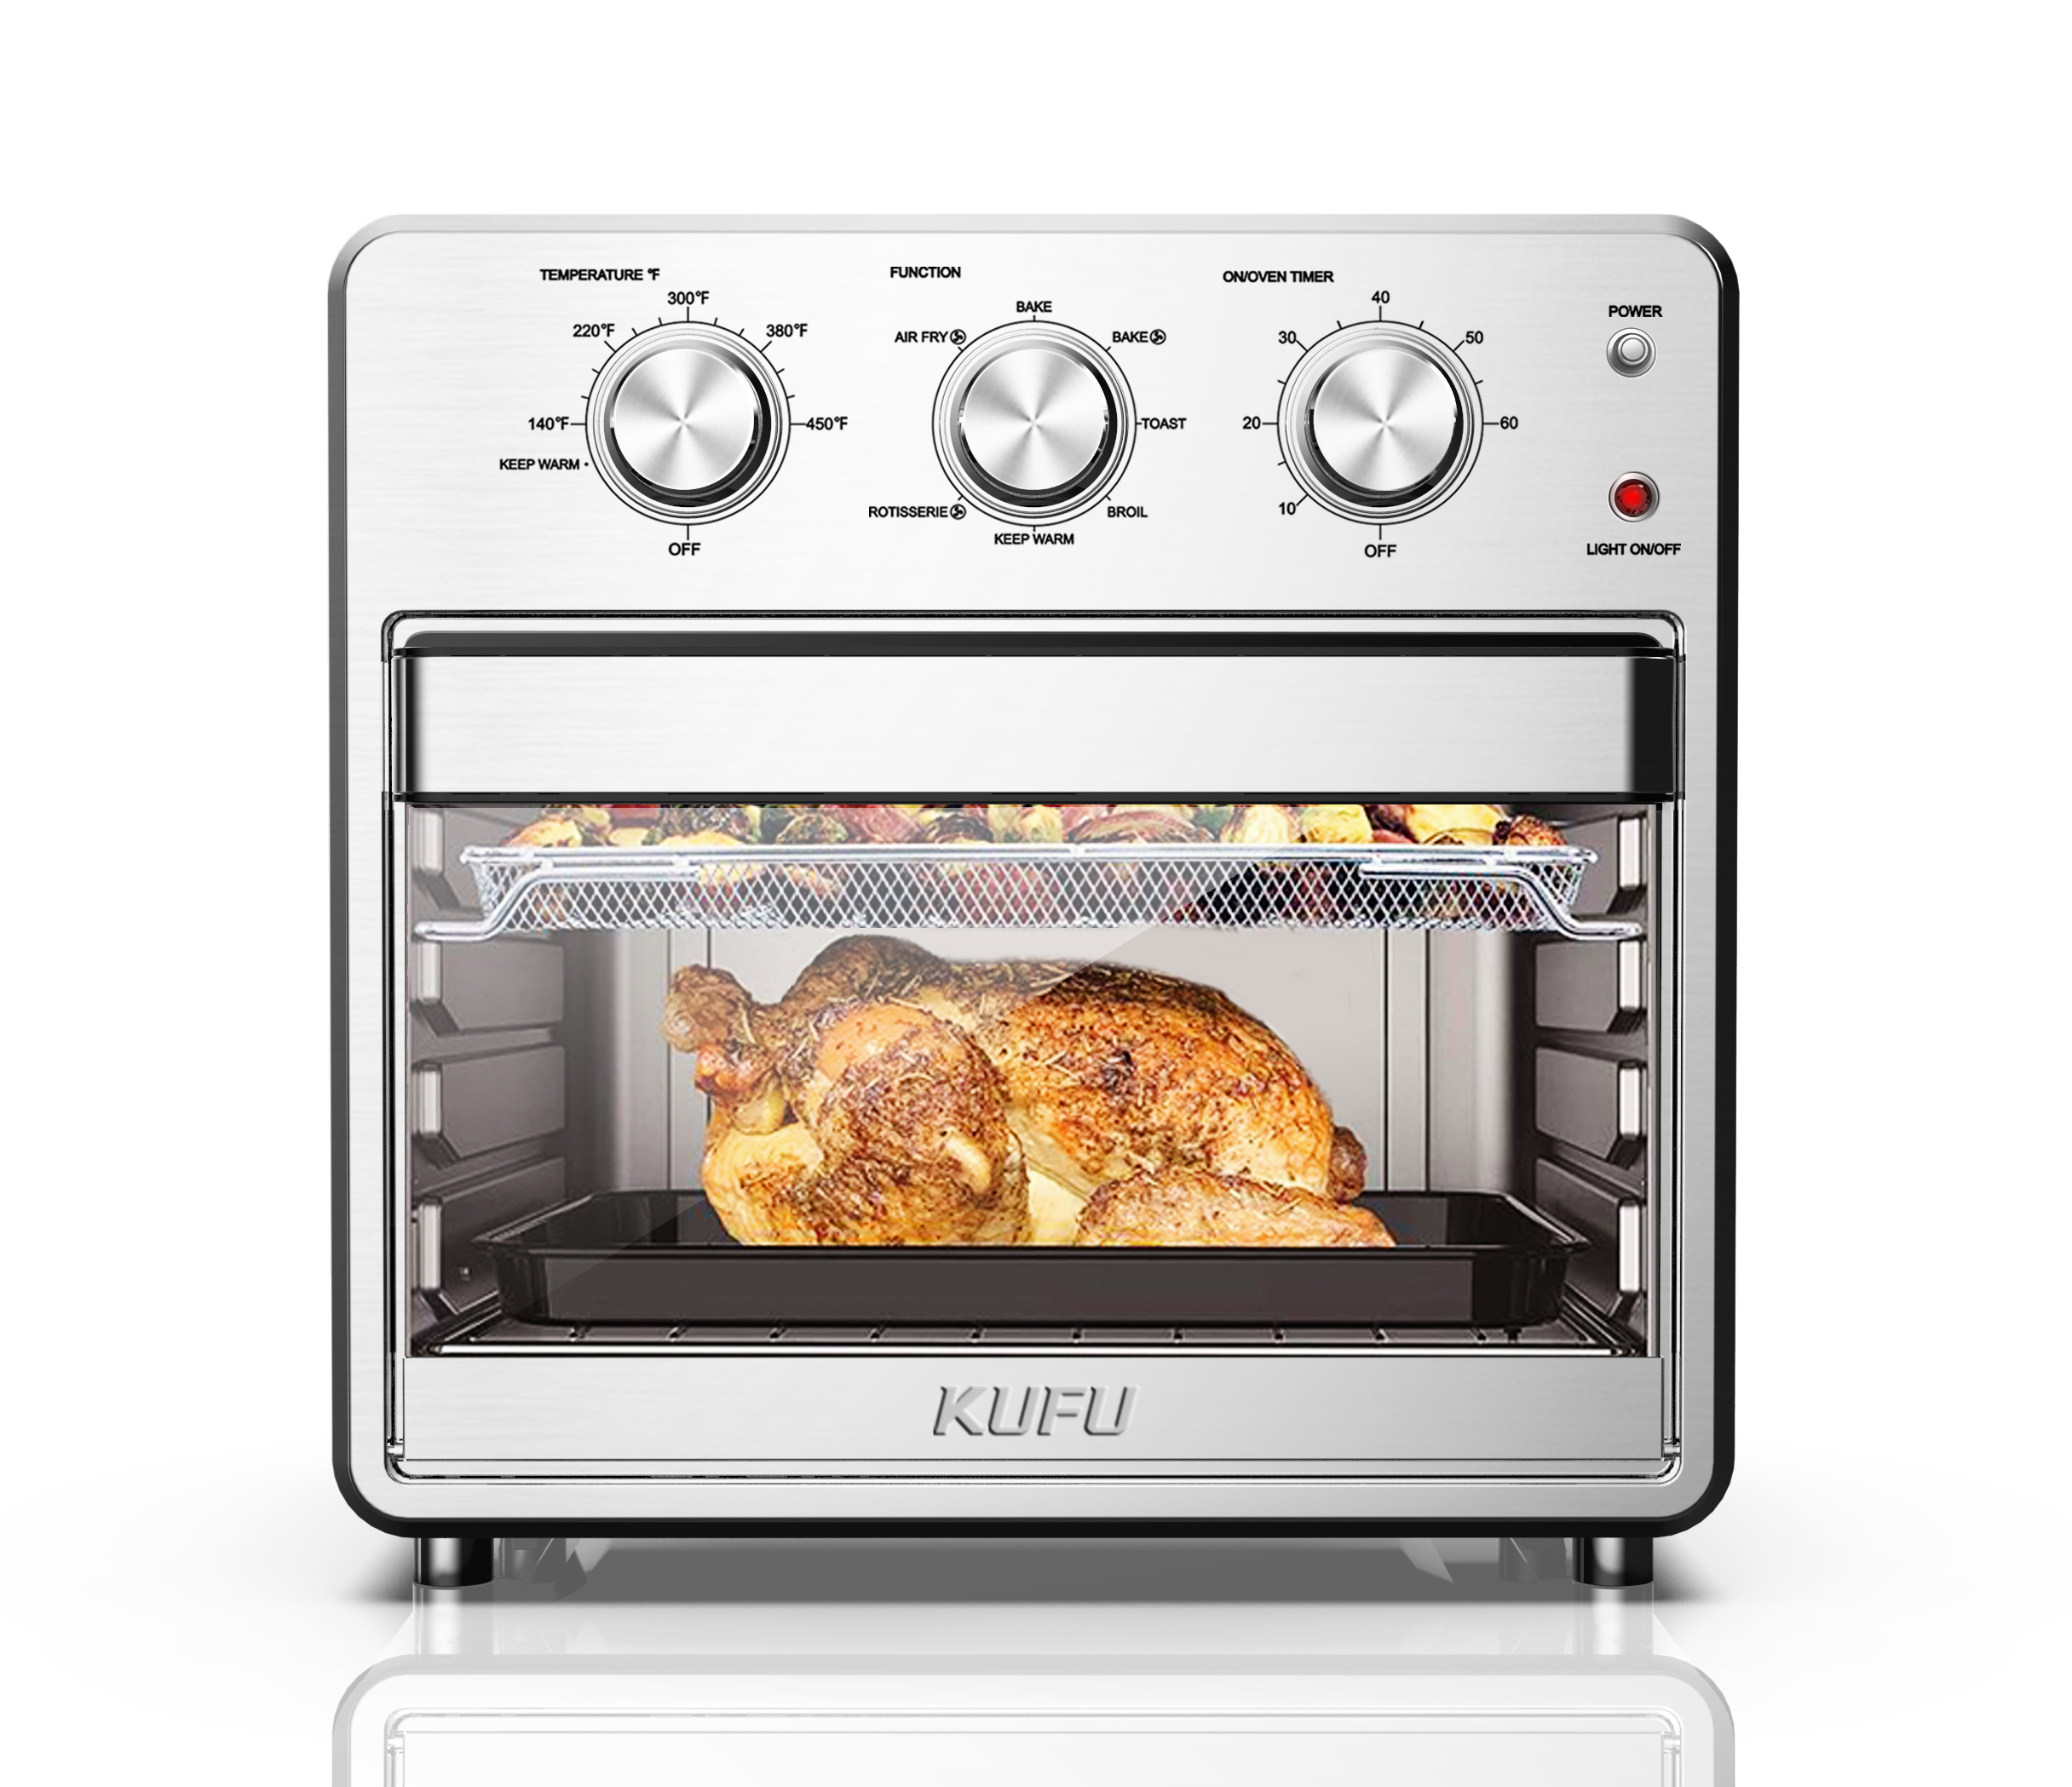 Kitchen Appliances Air Fryer Oven With Visible Window 15L 25L Toaster Ovens Air Fryer With Rotisserie Air Fryers